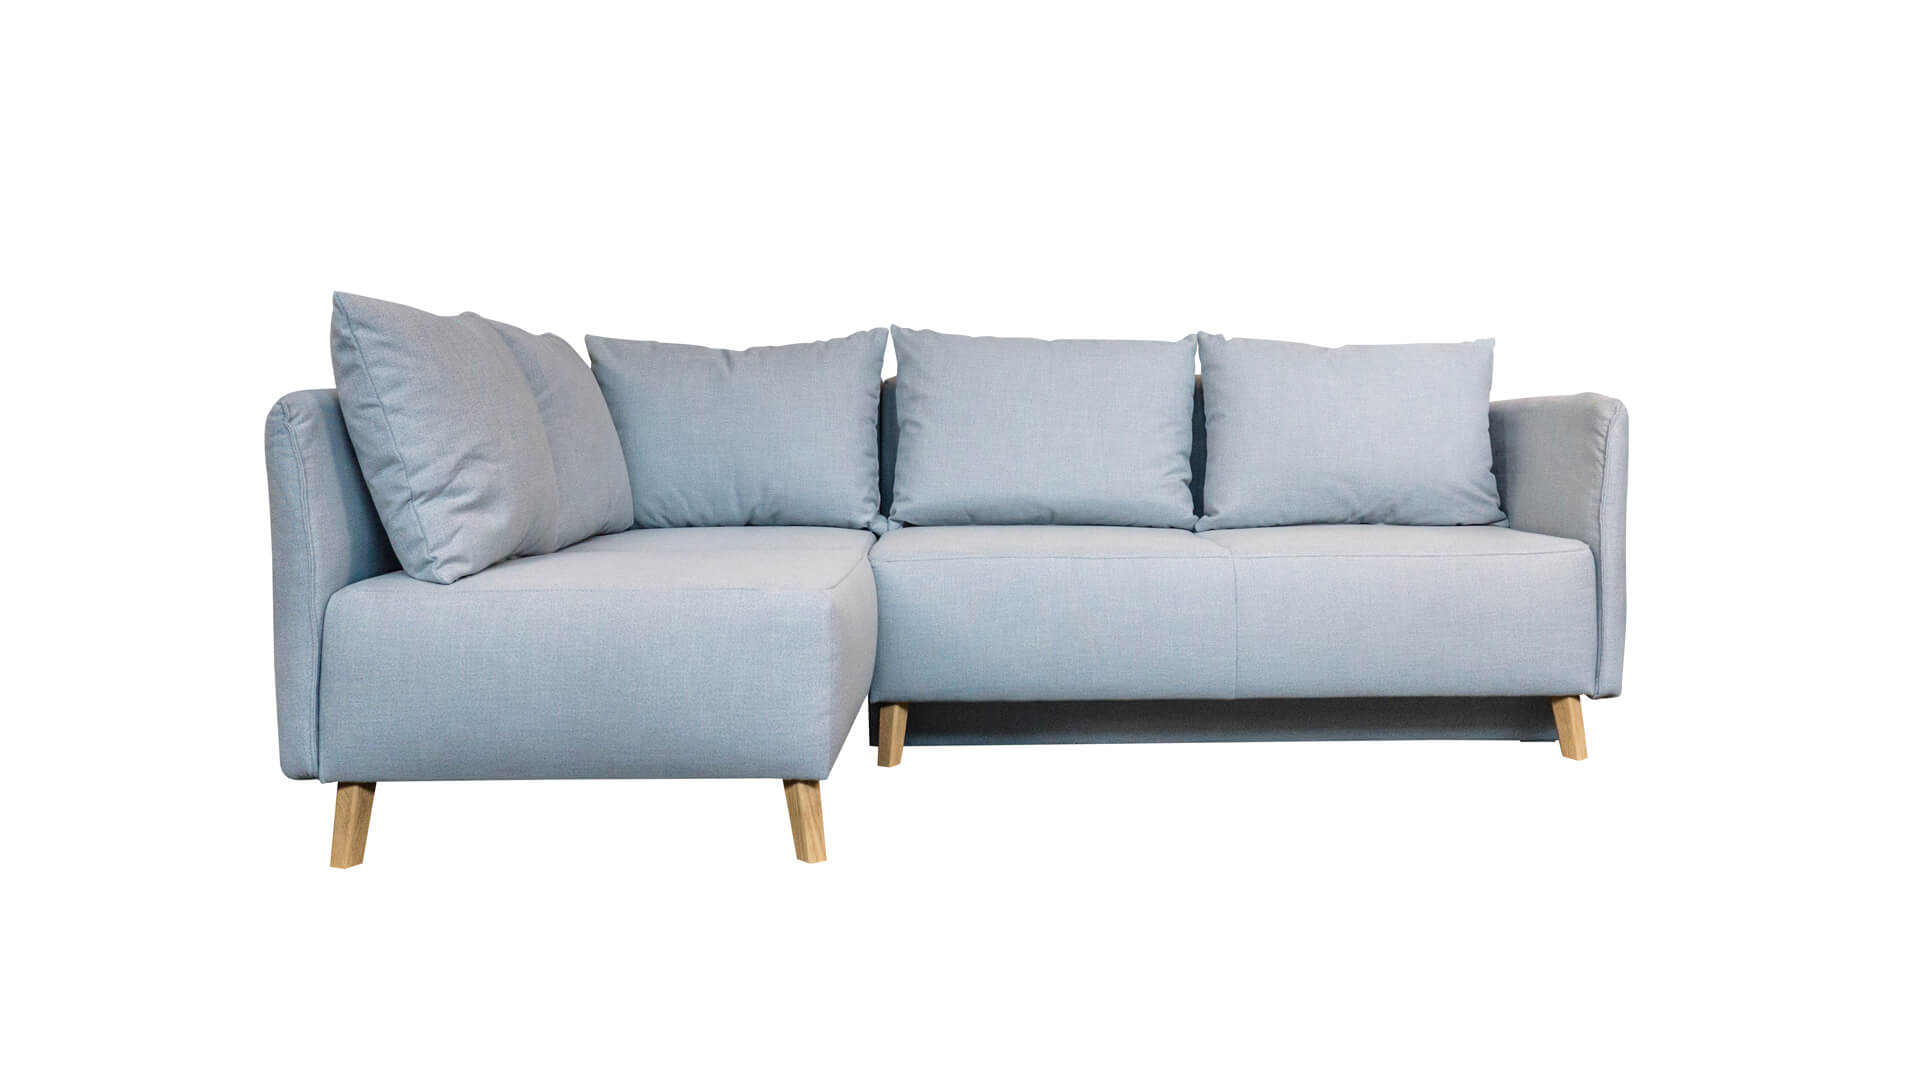 Full Size of Tom Tailor Sofa Big Cube Nordic Pure Couch Heaven Elements Xl Style West Coast Chic Casual Kleine Ecksofas Xxl Günstig Türkis Blau Ecksofa Garten Leder Sofa Tom Tailor Sofa